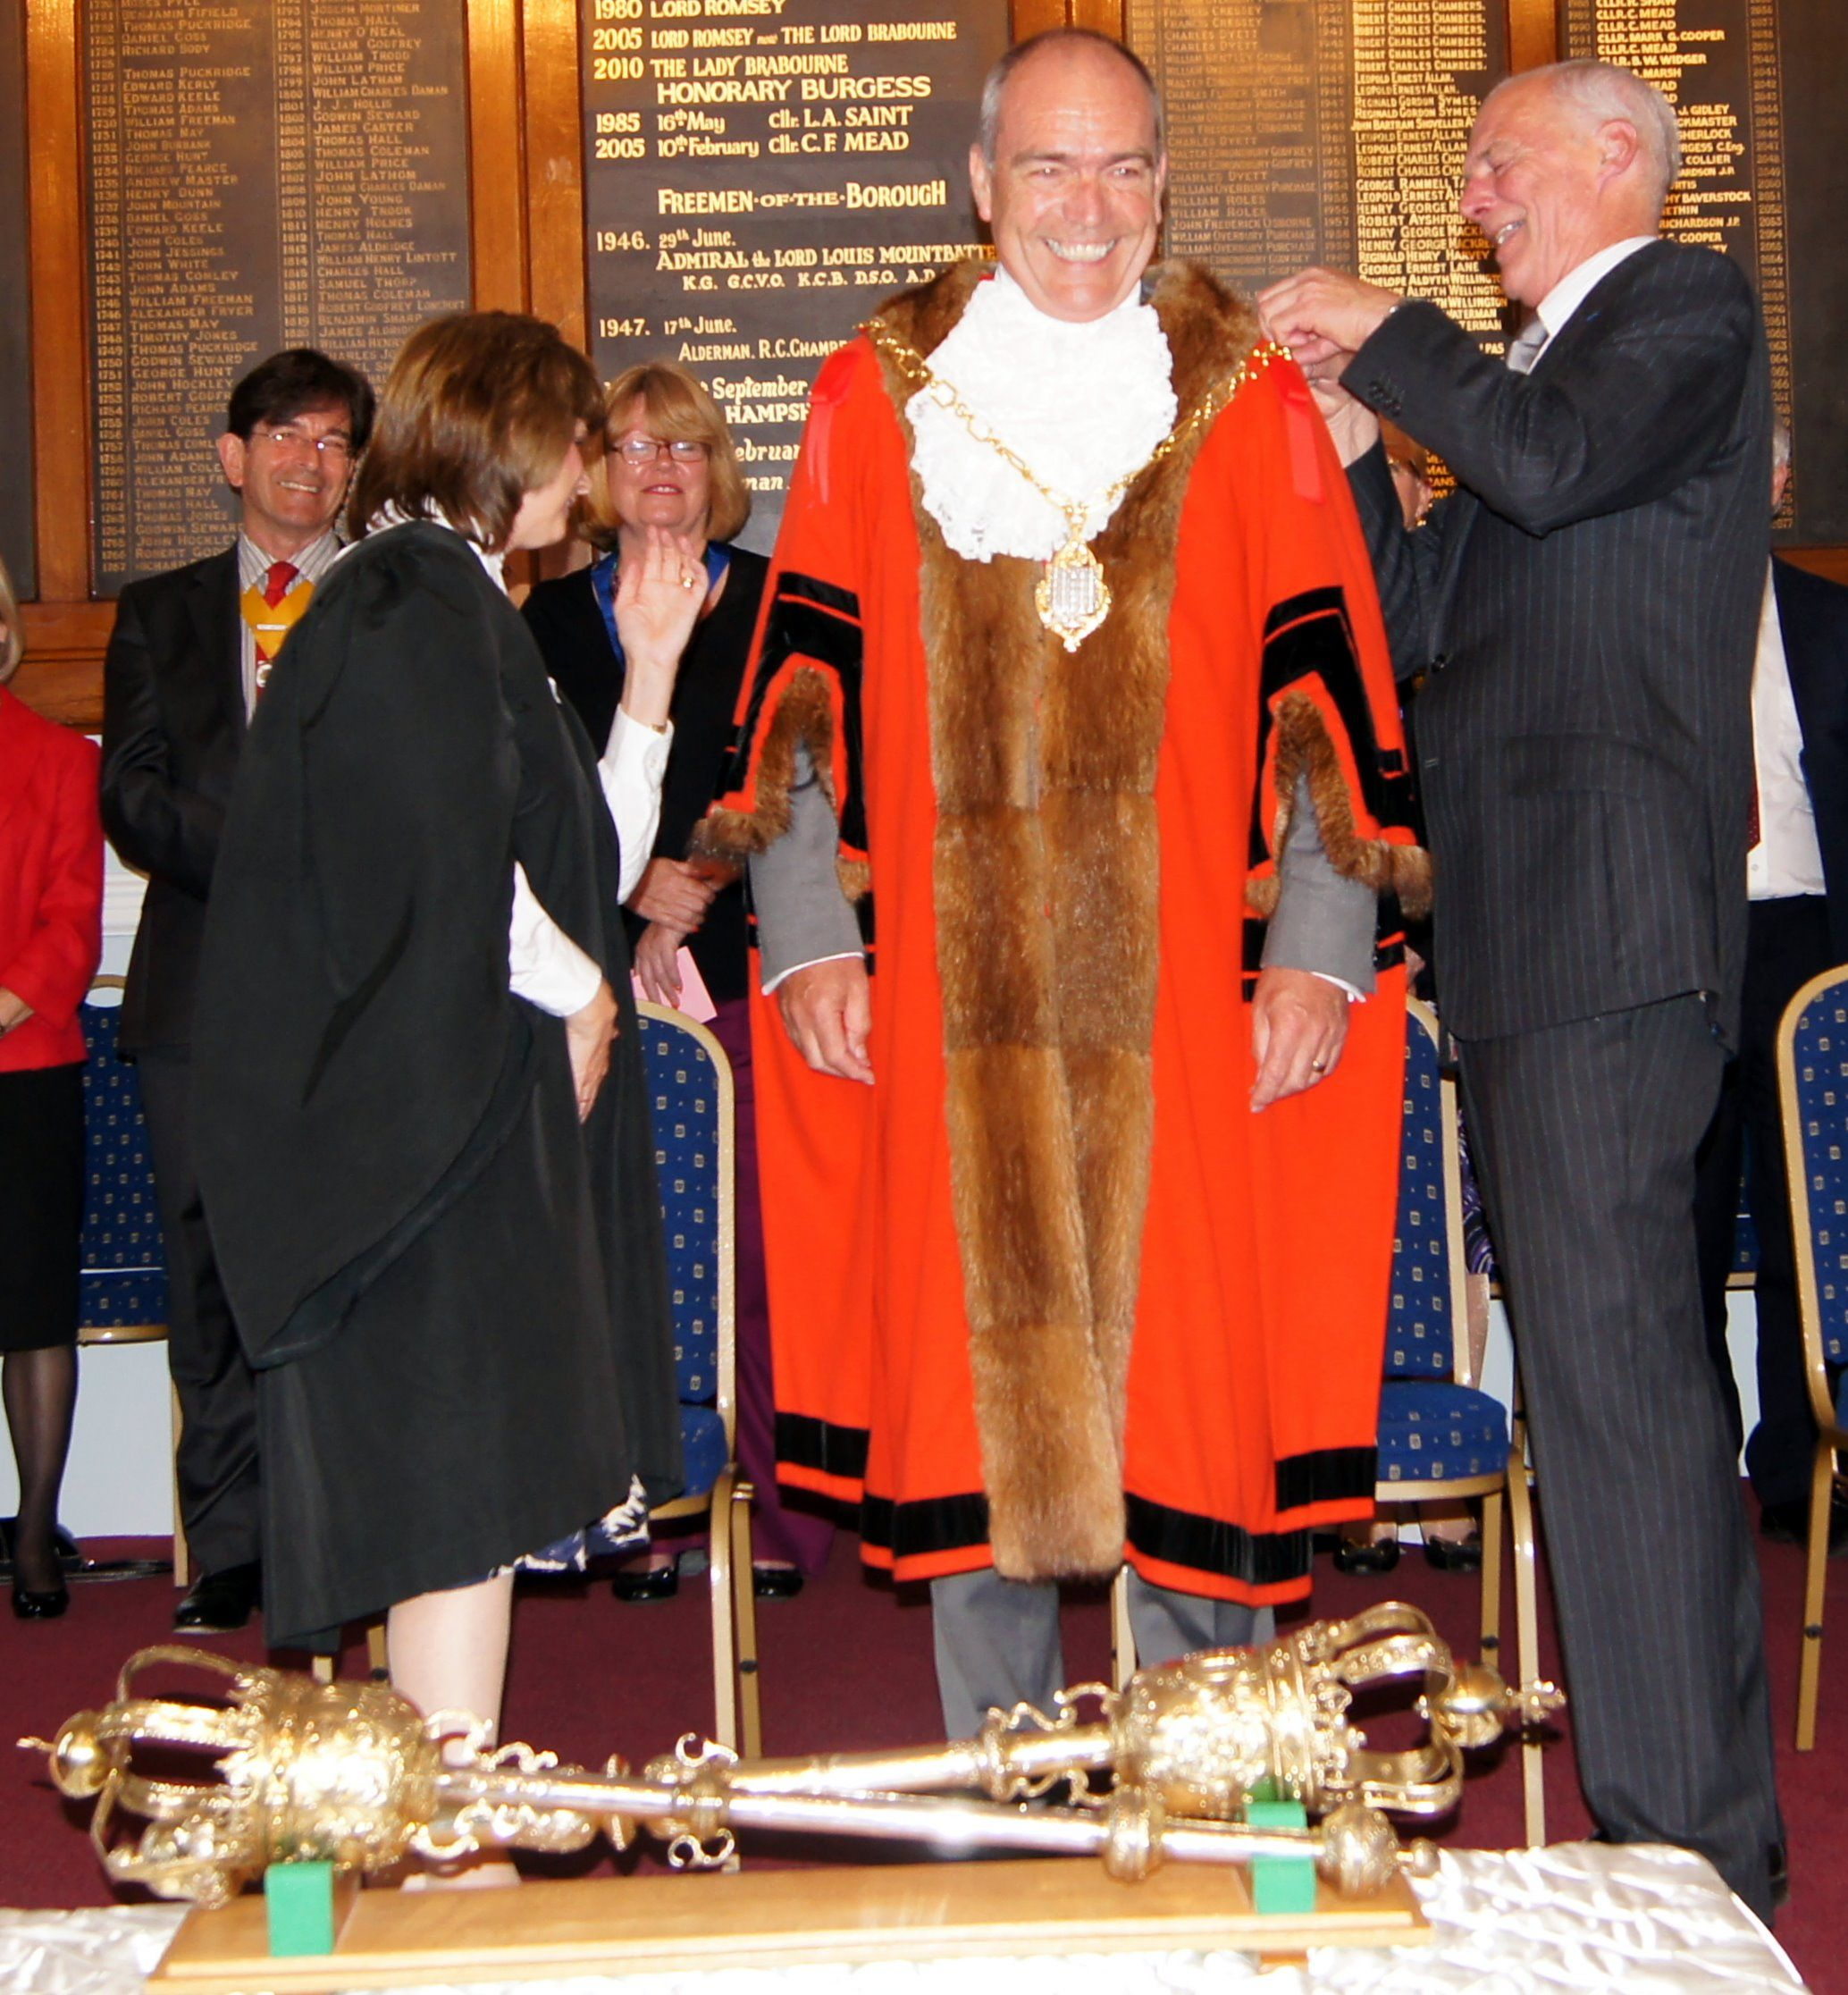 Romsey's new mayor Peter Hurst receives his chain office